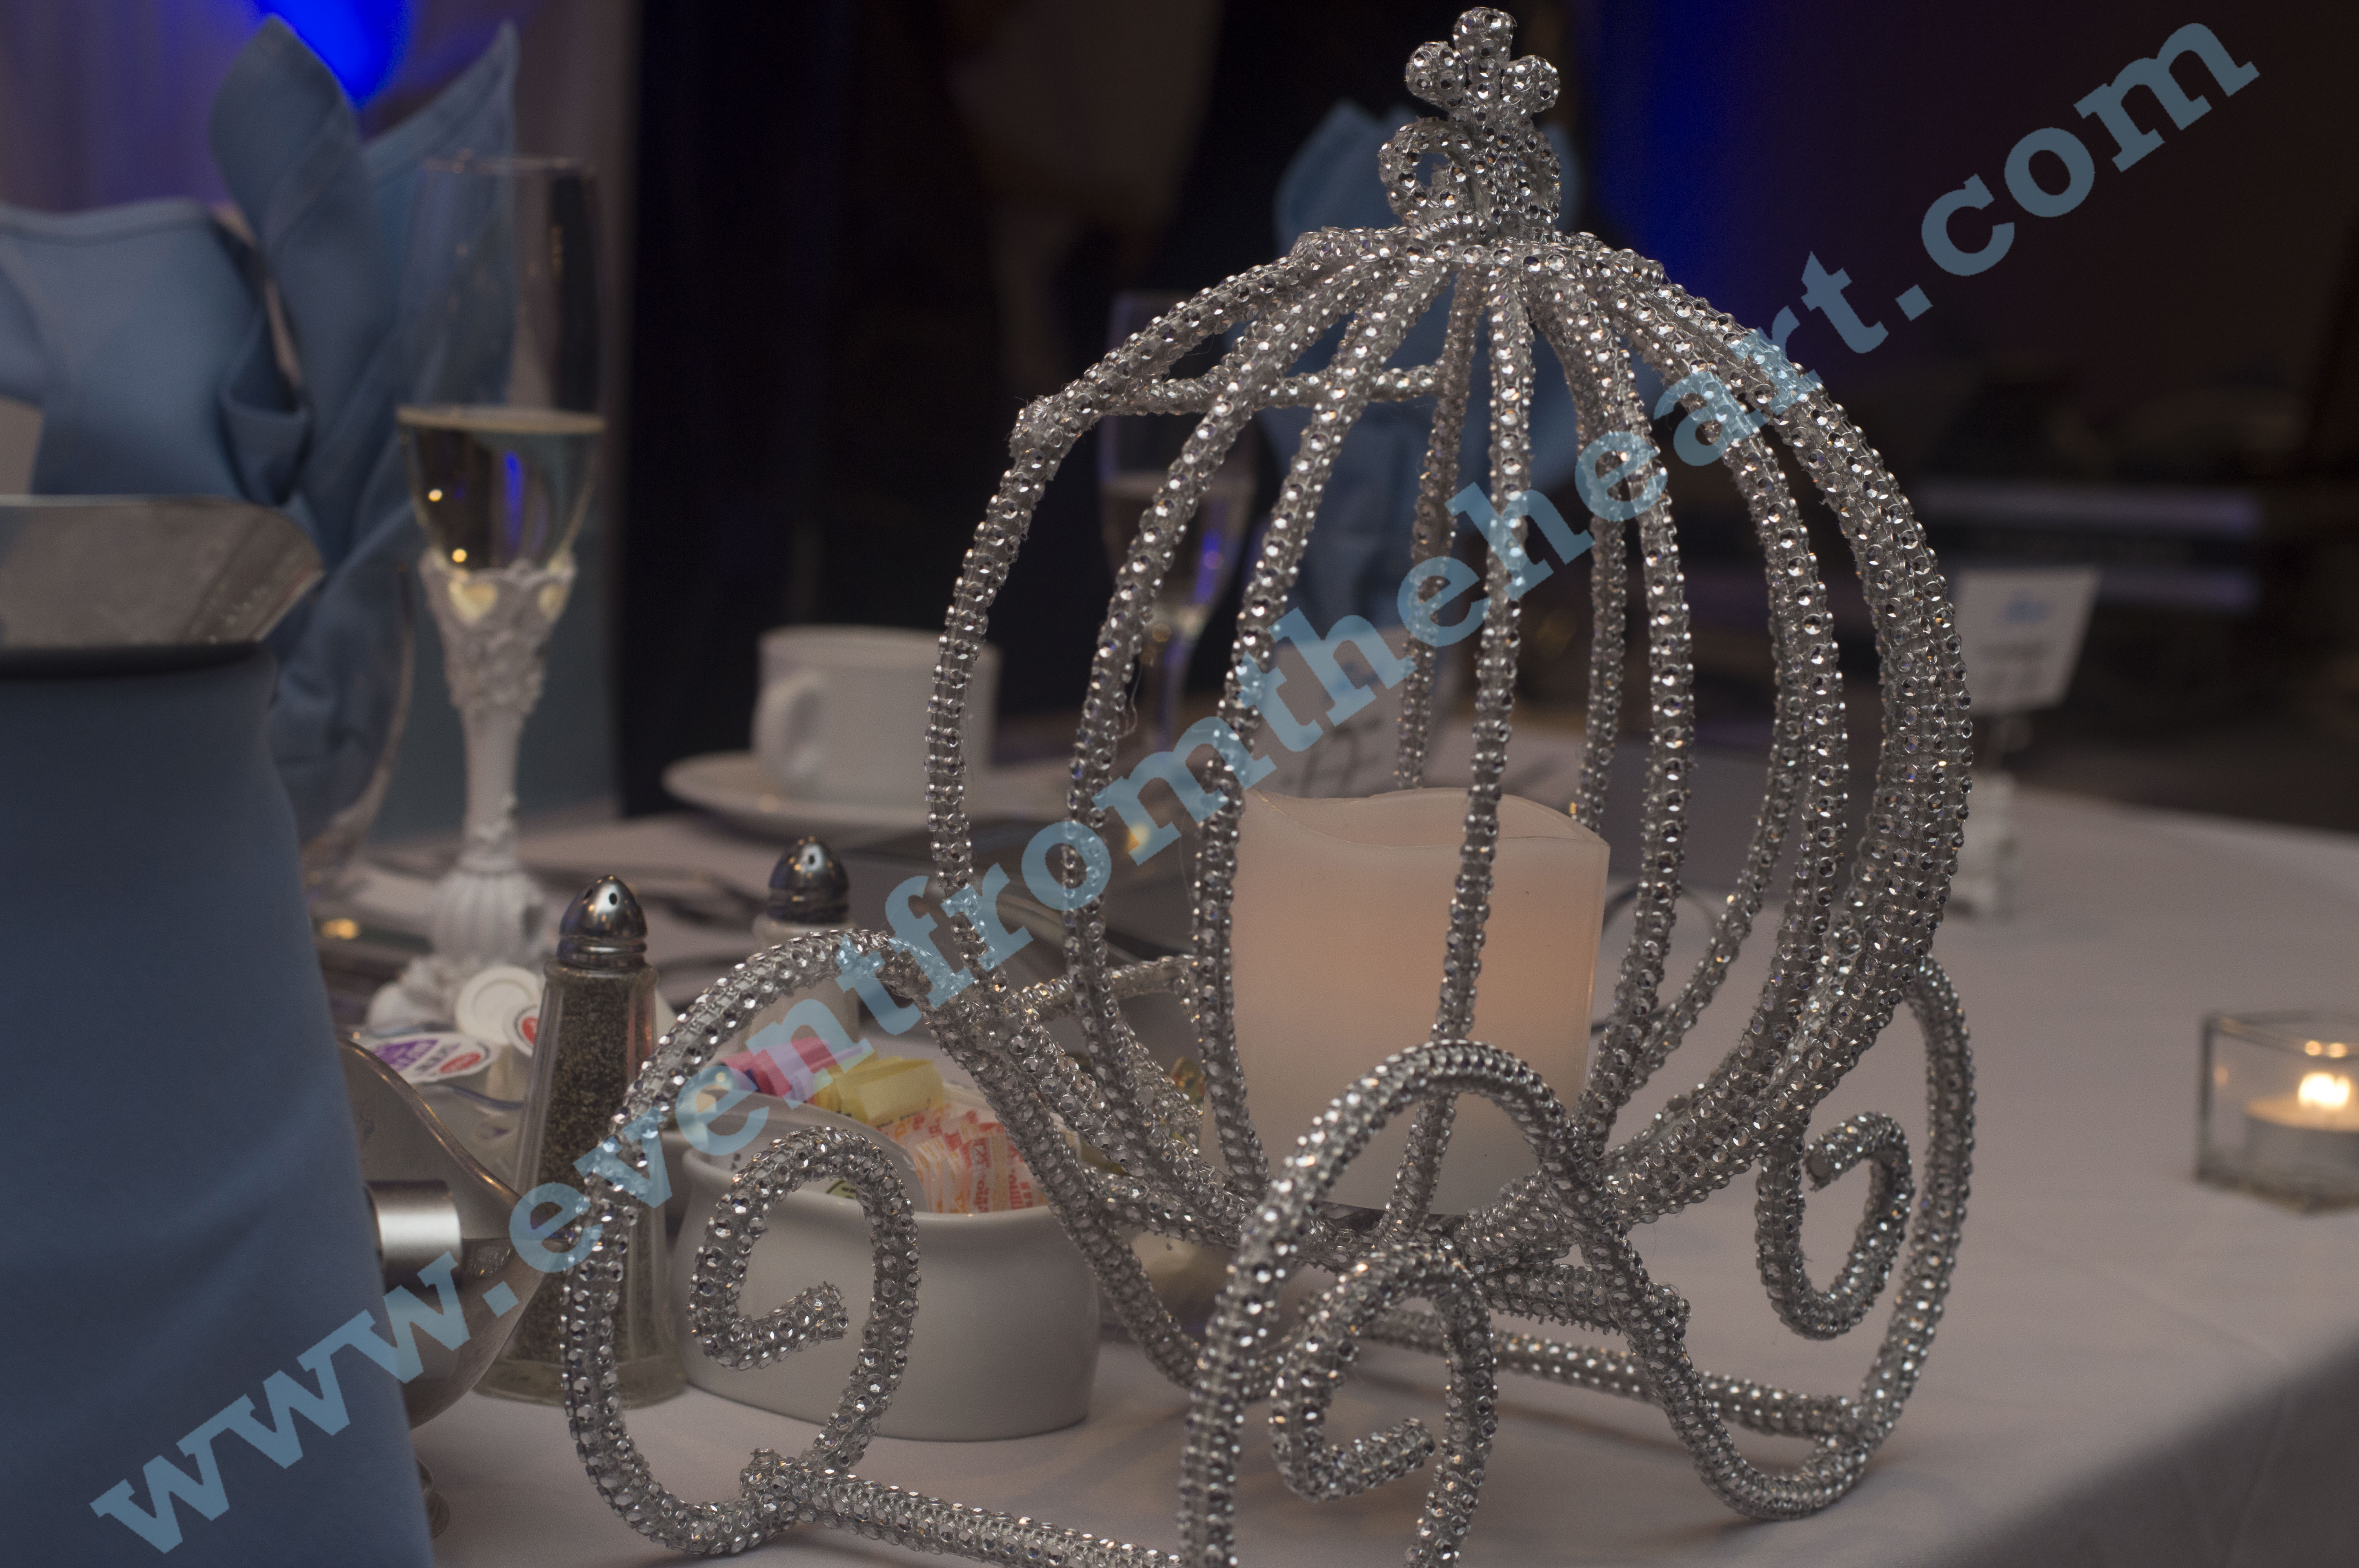 Event from the Heart - EFTH - S&SWedCarriage